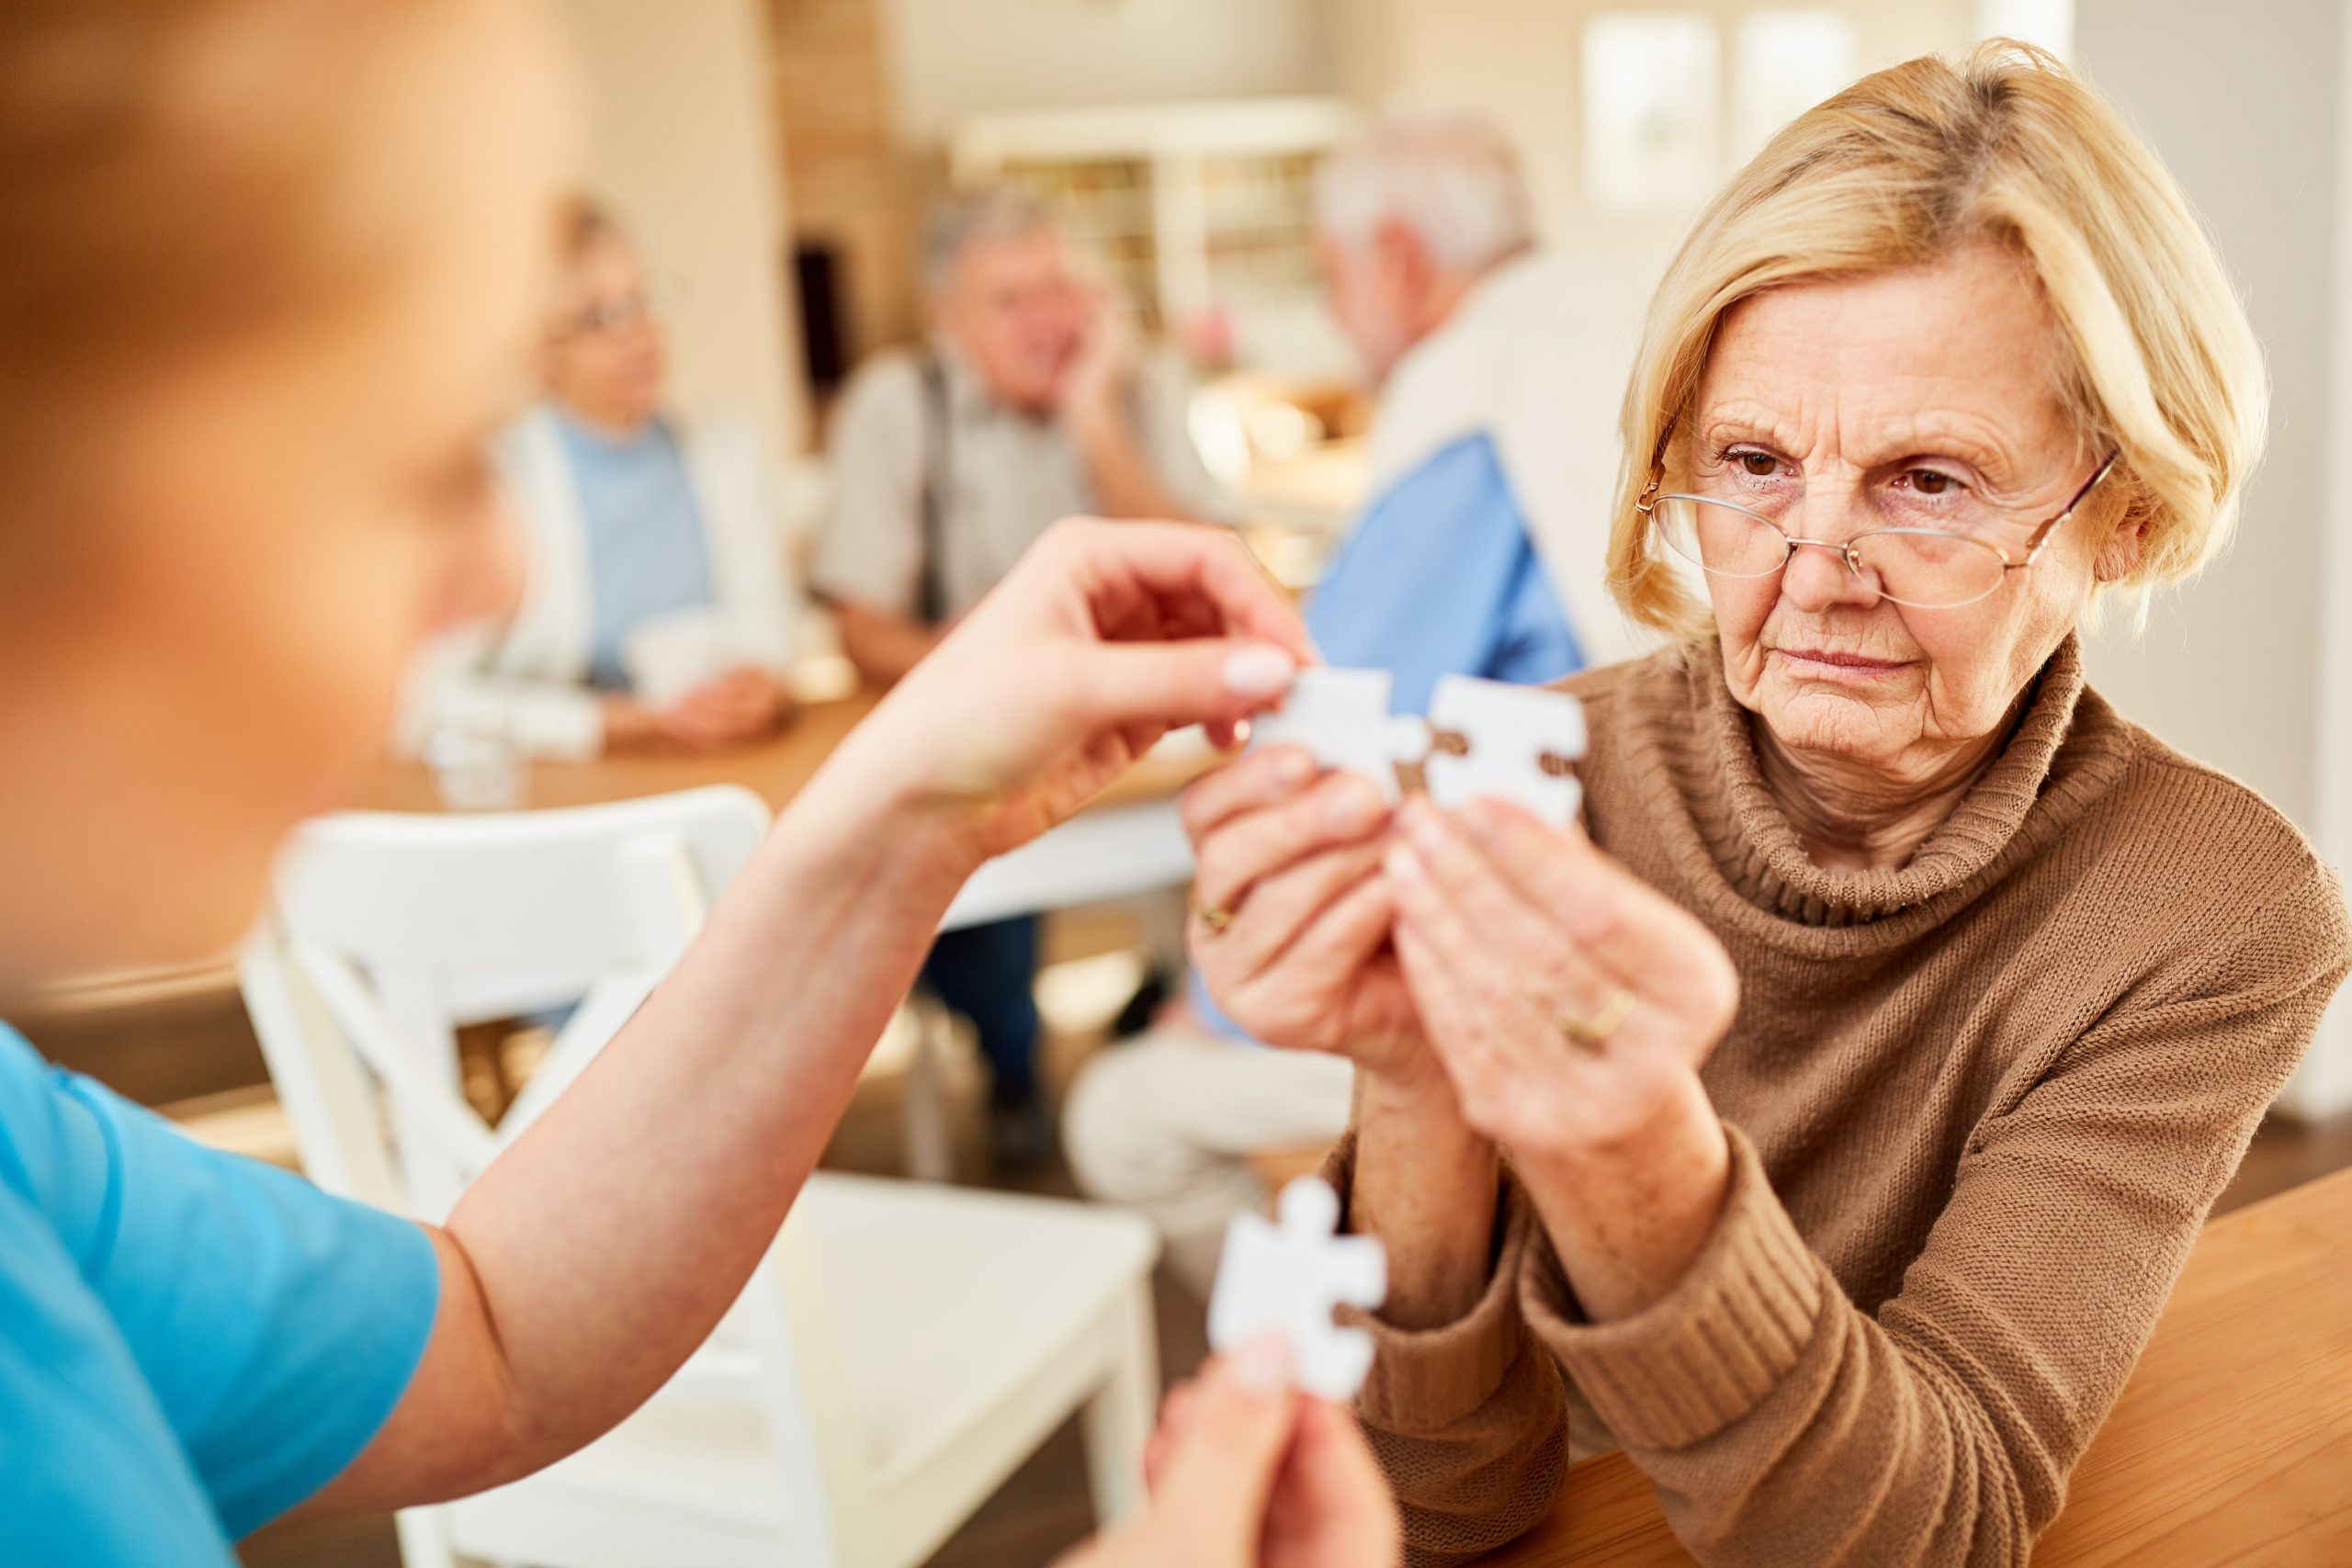 Senior with Alzheimer's or dementia has difficulty with puzzle pieces.